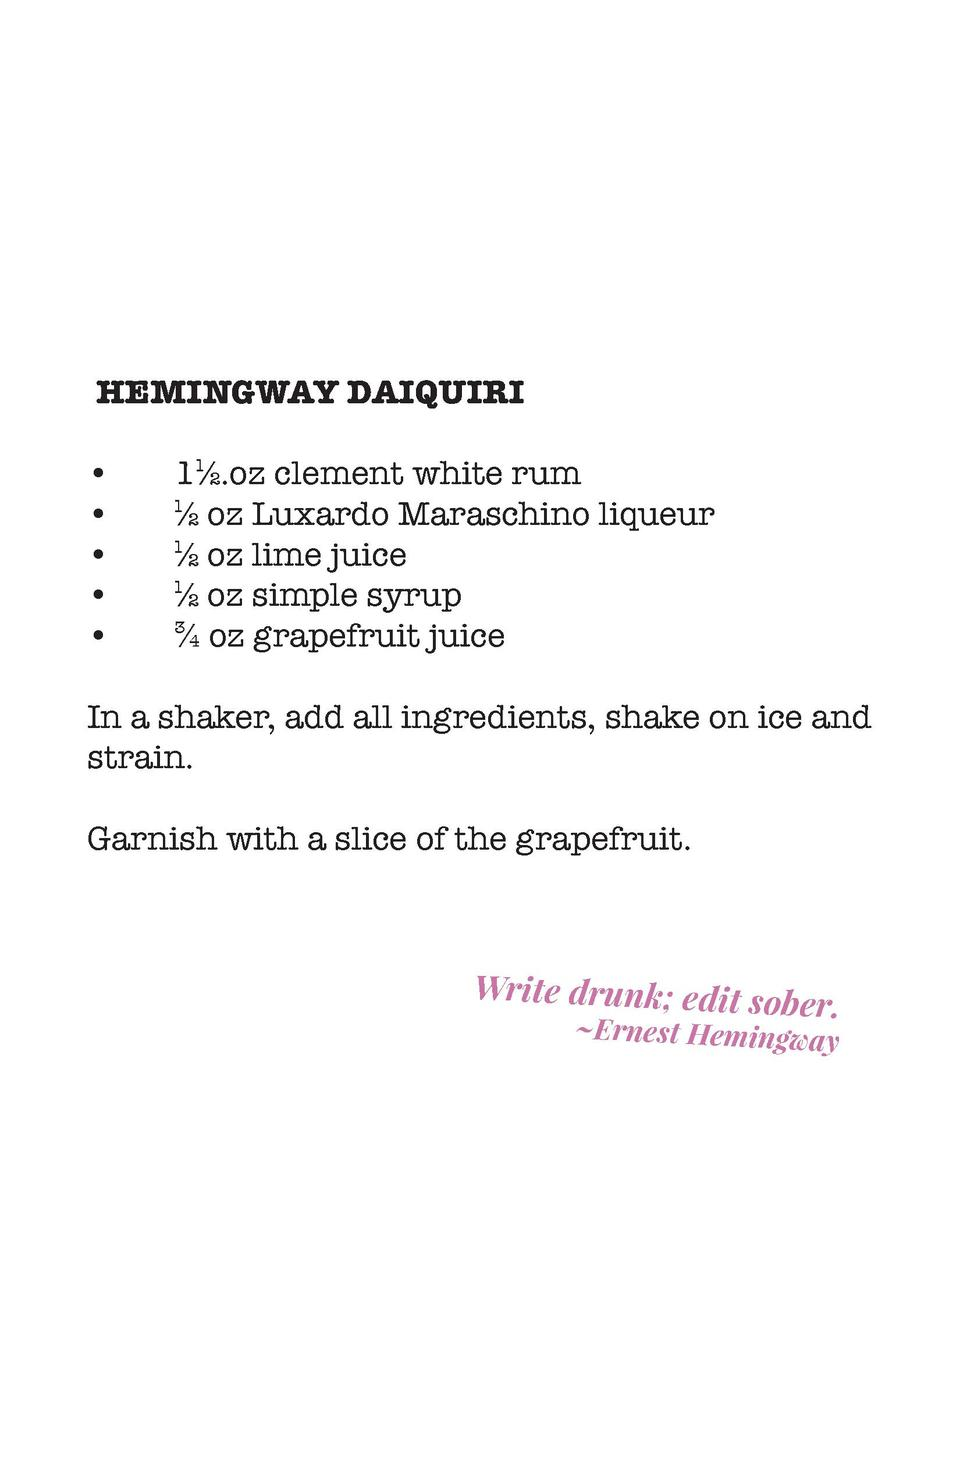 HEMINGWAY DAIQUIRI                           1  .oz clement white rum    oz Luxardo Maraschino liqueur    oz lime juice   ...